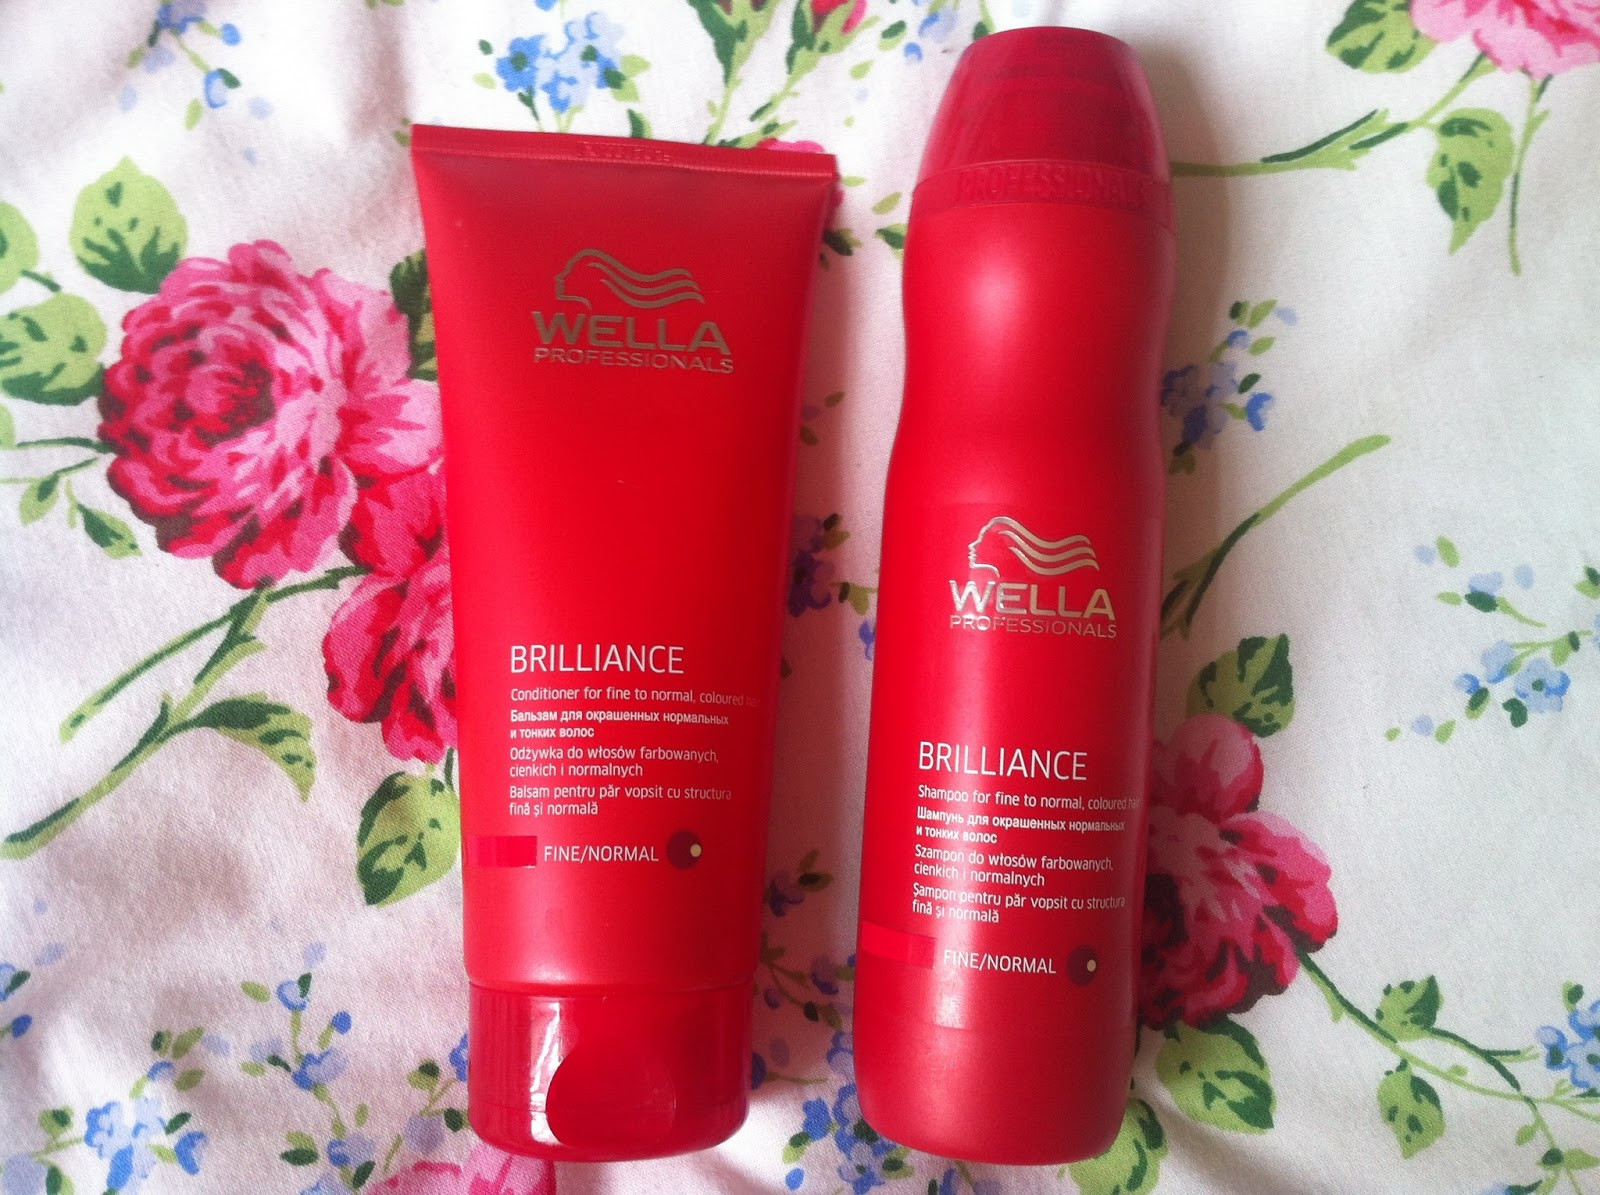 abby mchale review wella professional brilliance shampoo and conditioner. Black Bedroom Furniture Sets. Home Design Ideas